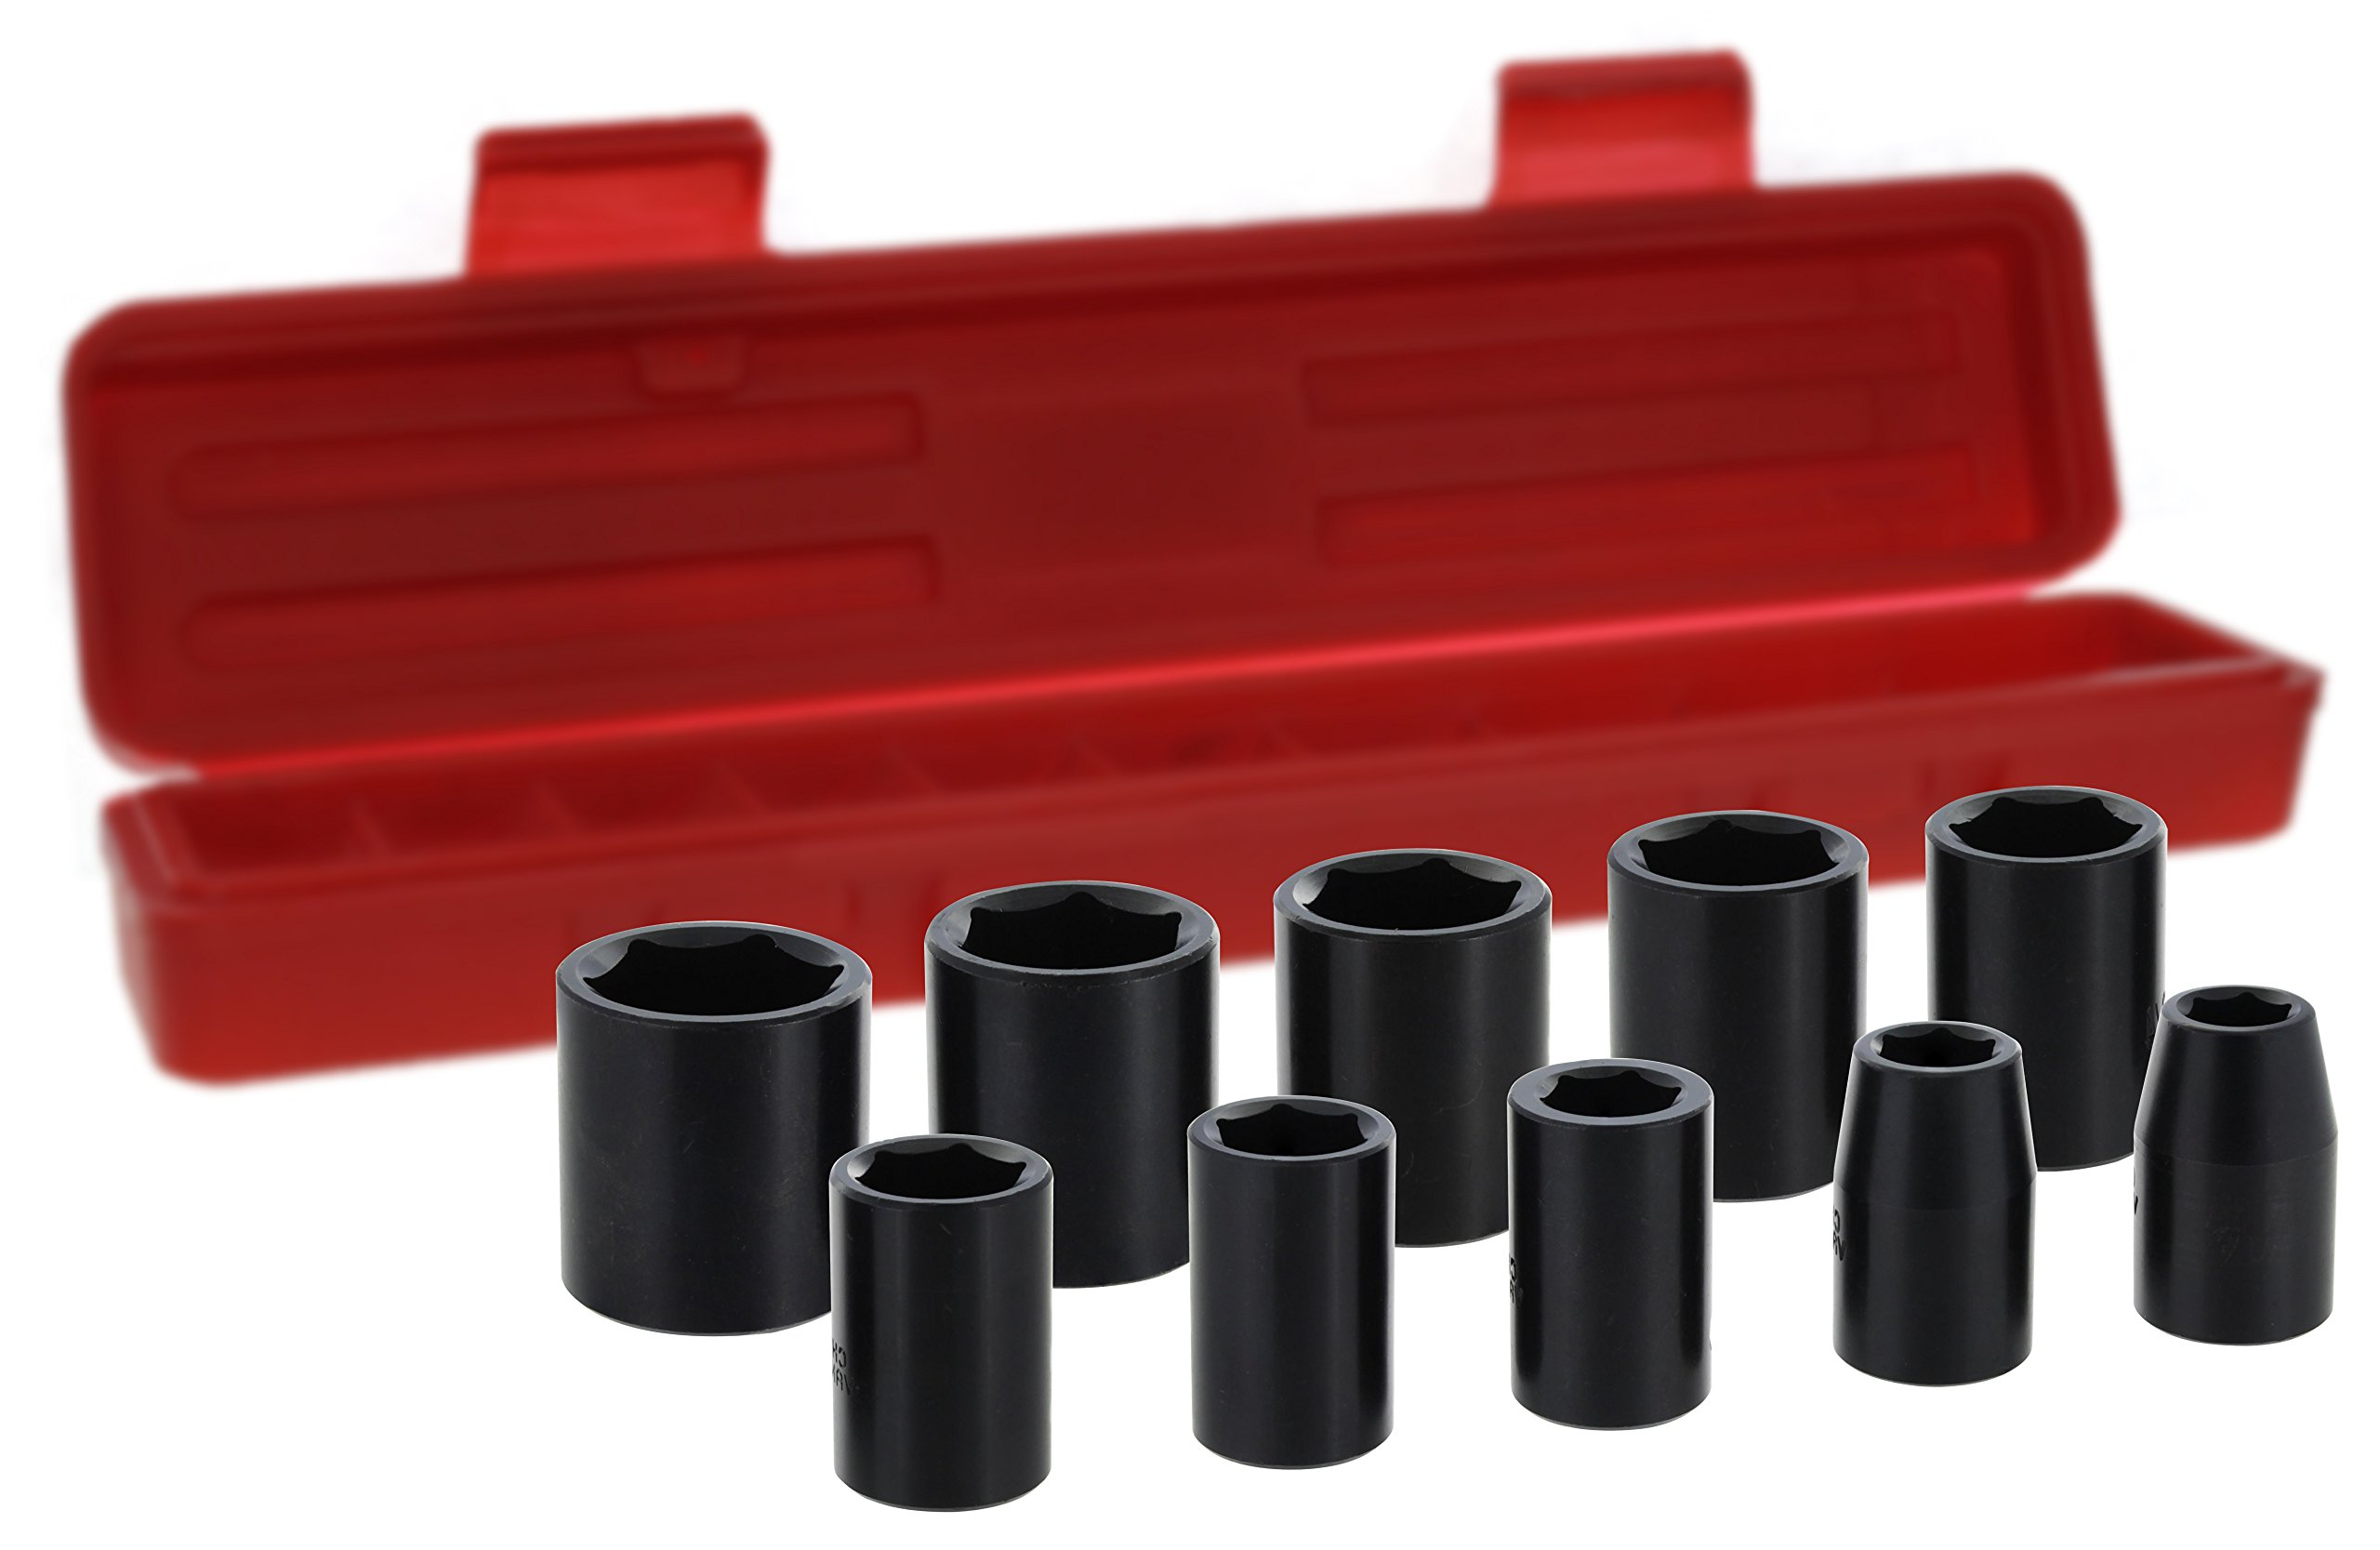 Drixet 1/2'' Drive Shallow Metric Impact Socket Set | 10-Piece 6-Point CR-V Sockets with Case | Includes Sizes: 12, 13, 14, 15, 16, 17, 18, 19, 21 & 24mm